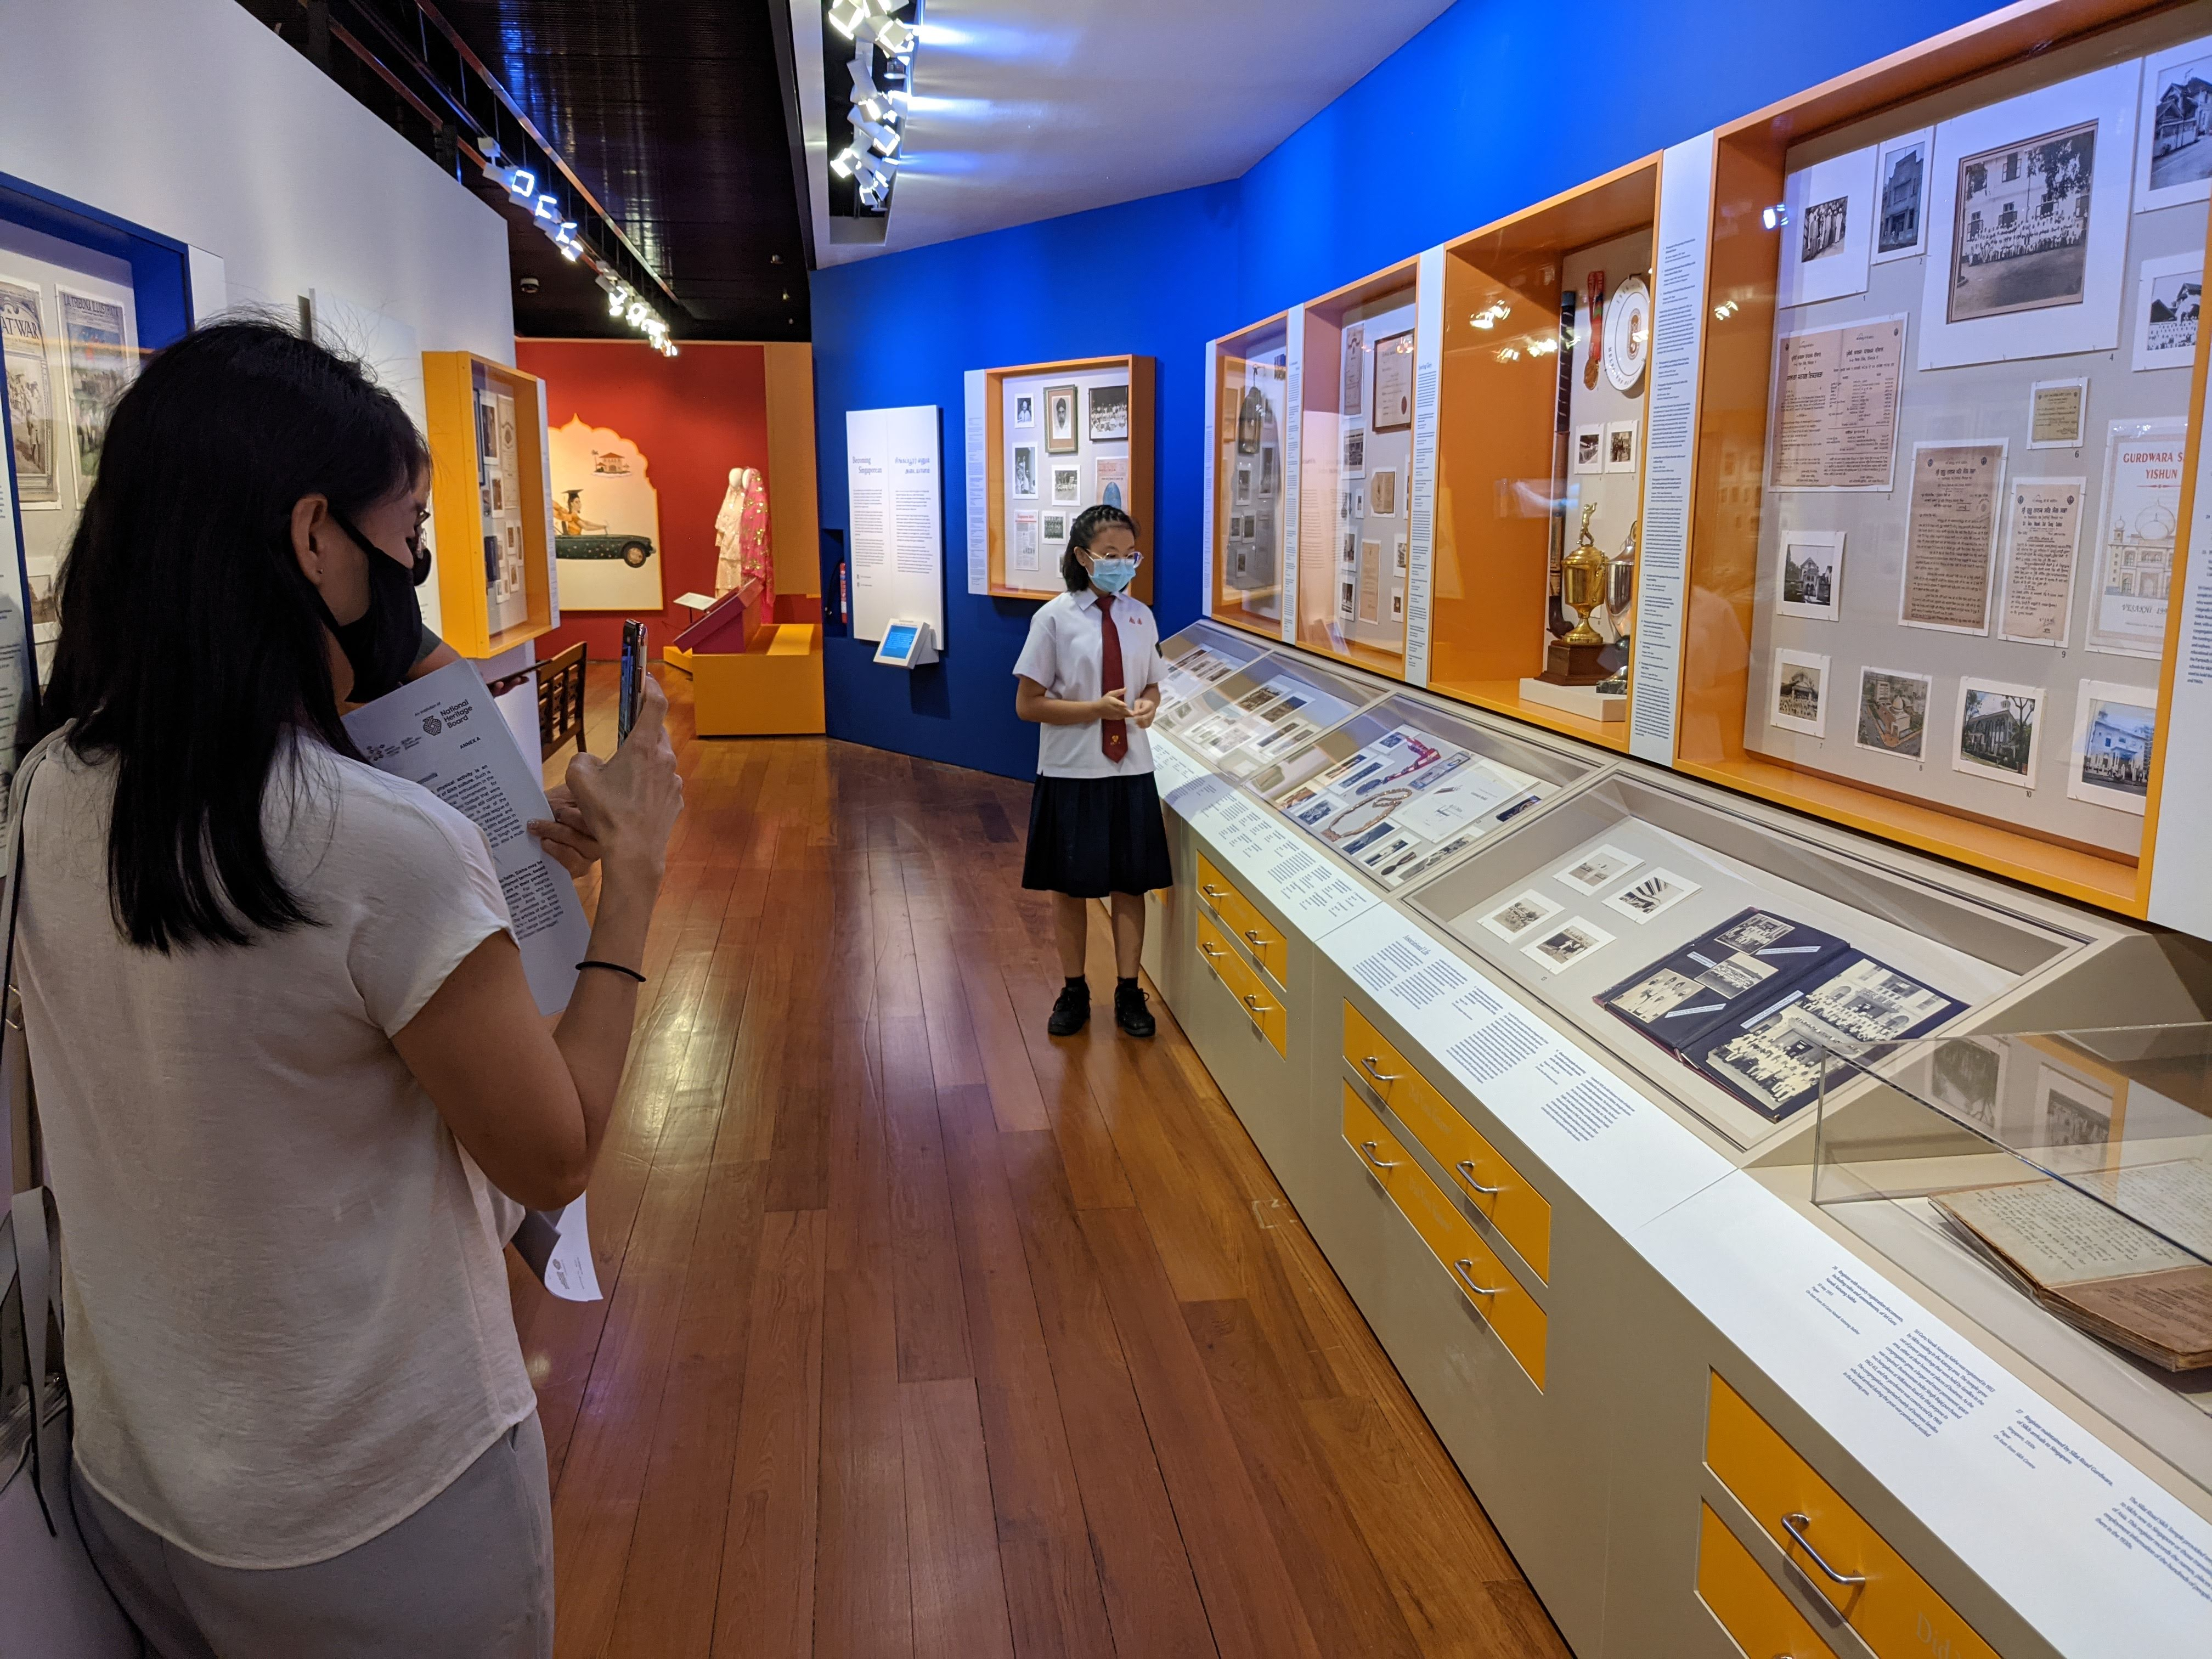 As part of IHC's signature student guide programme, students from the Singapore Sikh Education Foundation and Nan Chiau High School will lead their schoolmates on tours of the exhibition.